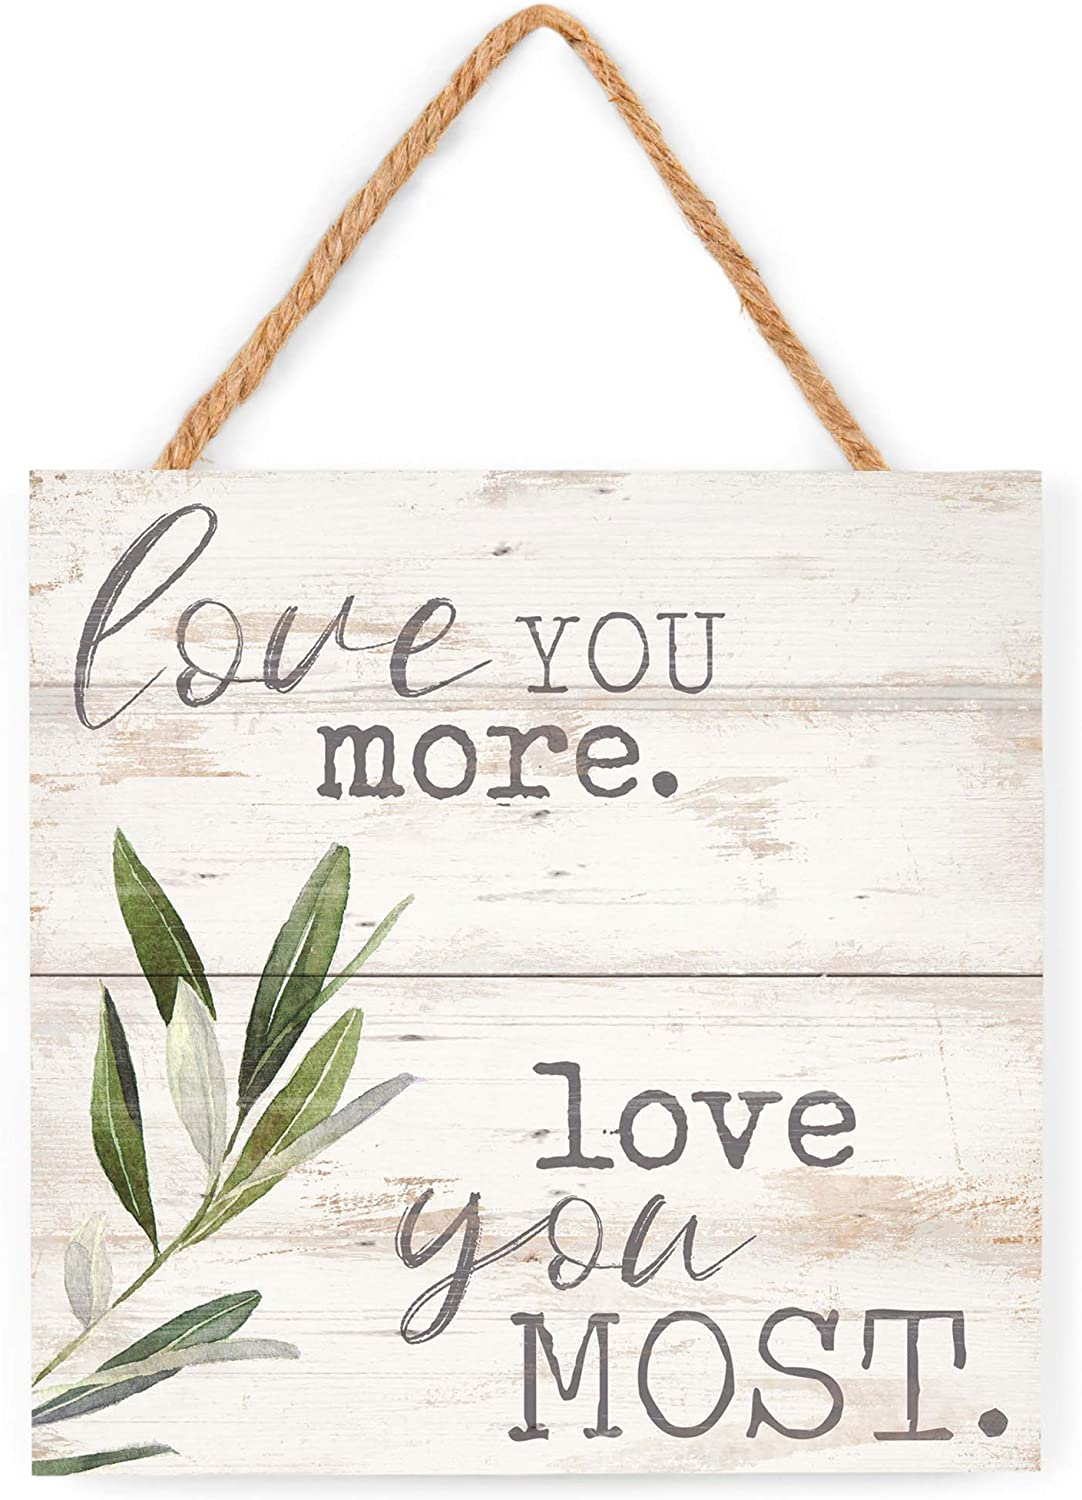 P. Graham Dunn Love You More Most Whitewash 7 x 7 Inch Wood Pallet Wall Hanging Sign